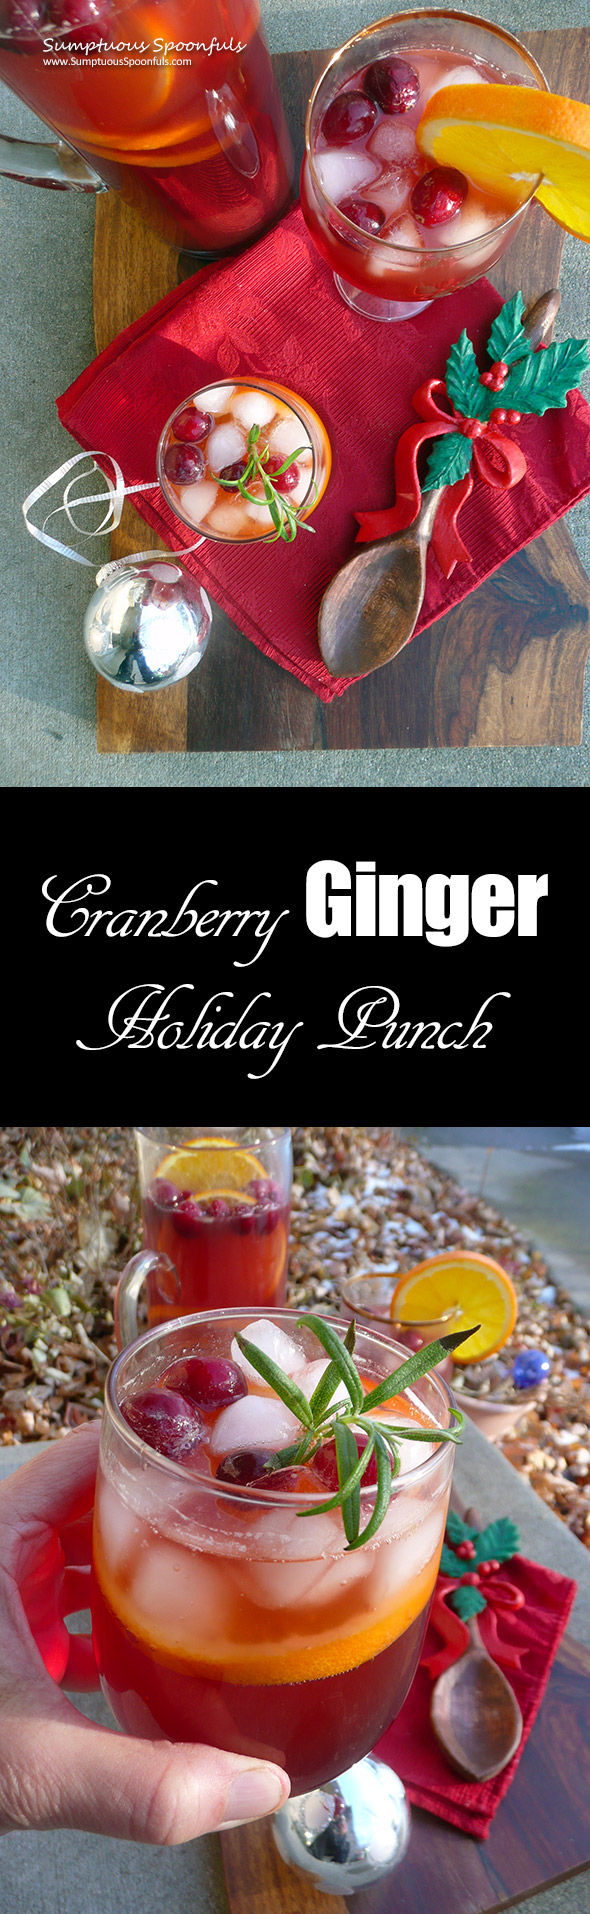 Cranberry Ginger Holiday Punch ~ Sumptuous Spoonfuls #refreshing #holiday #punch #recipe